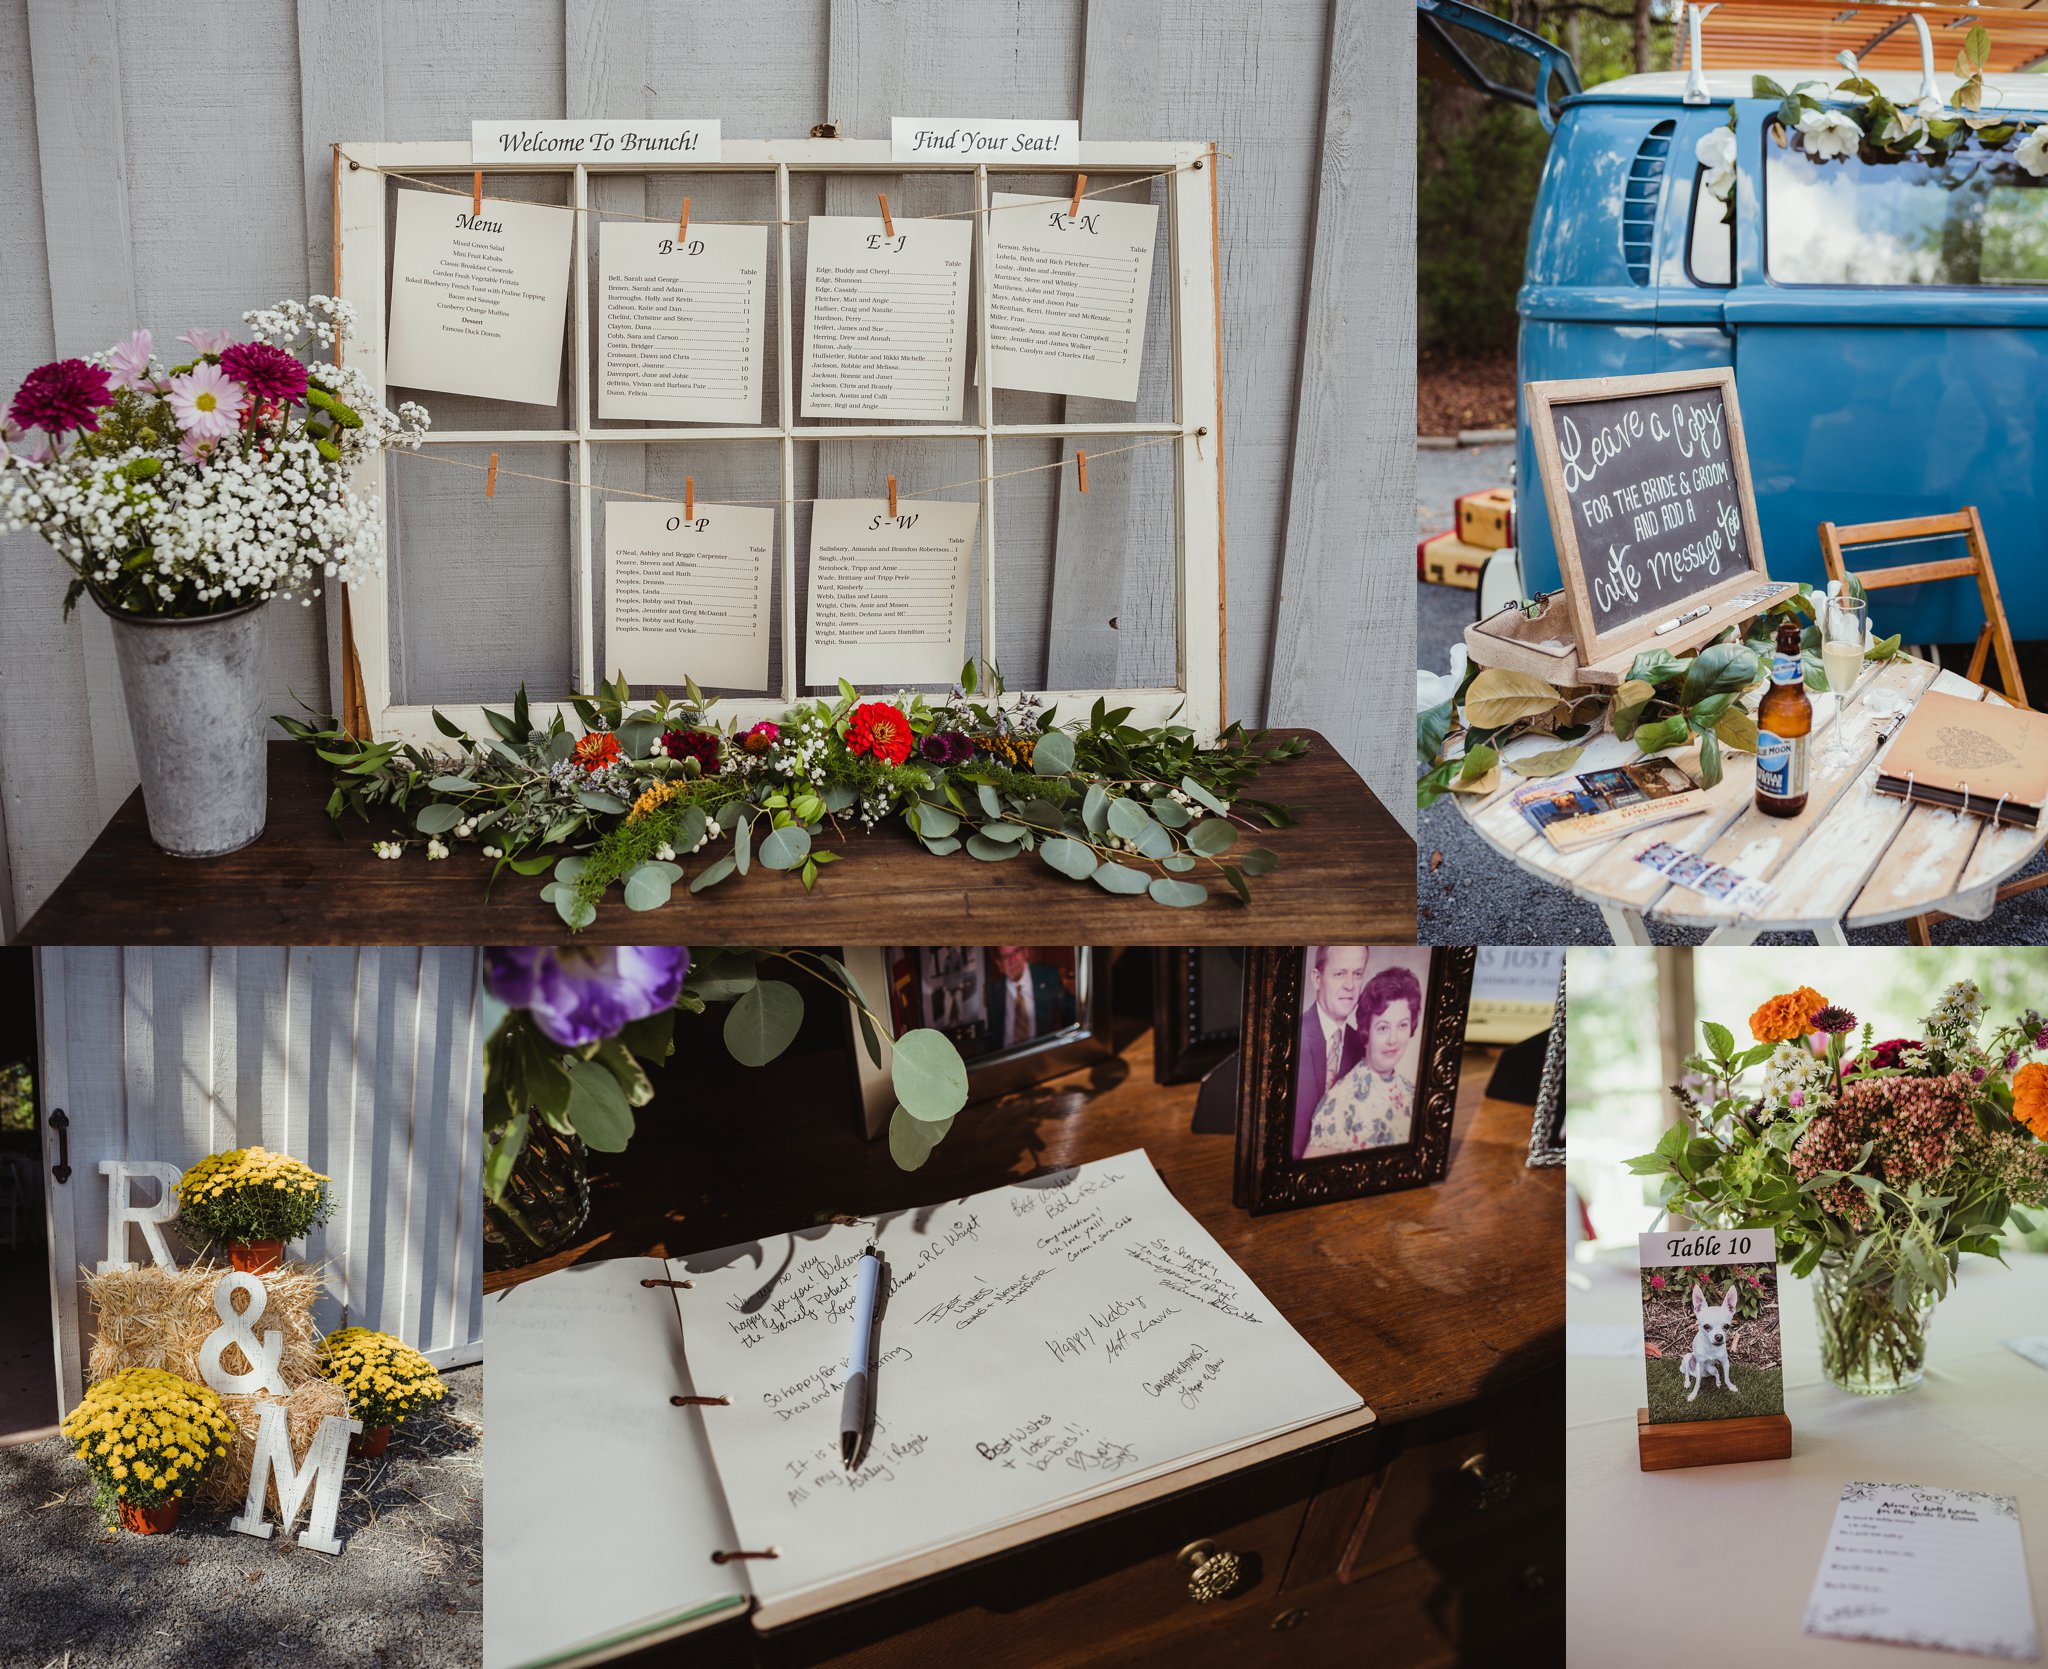 Details of the wedding reception at Cedar Grove Acres near Raleigh include a guestbook, a photo bus, wildflowers, and dog photos as centerpieces, pictures by Rose Trail Images.